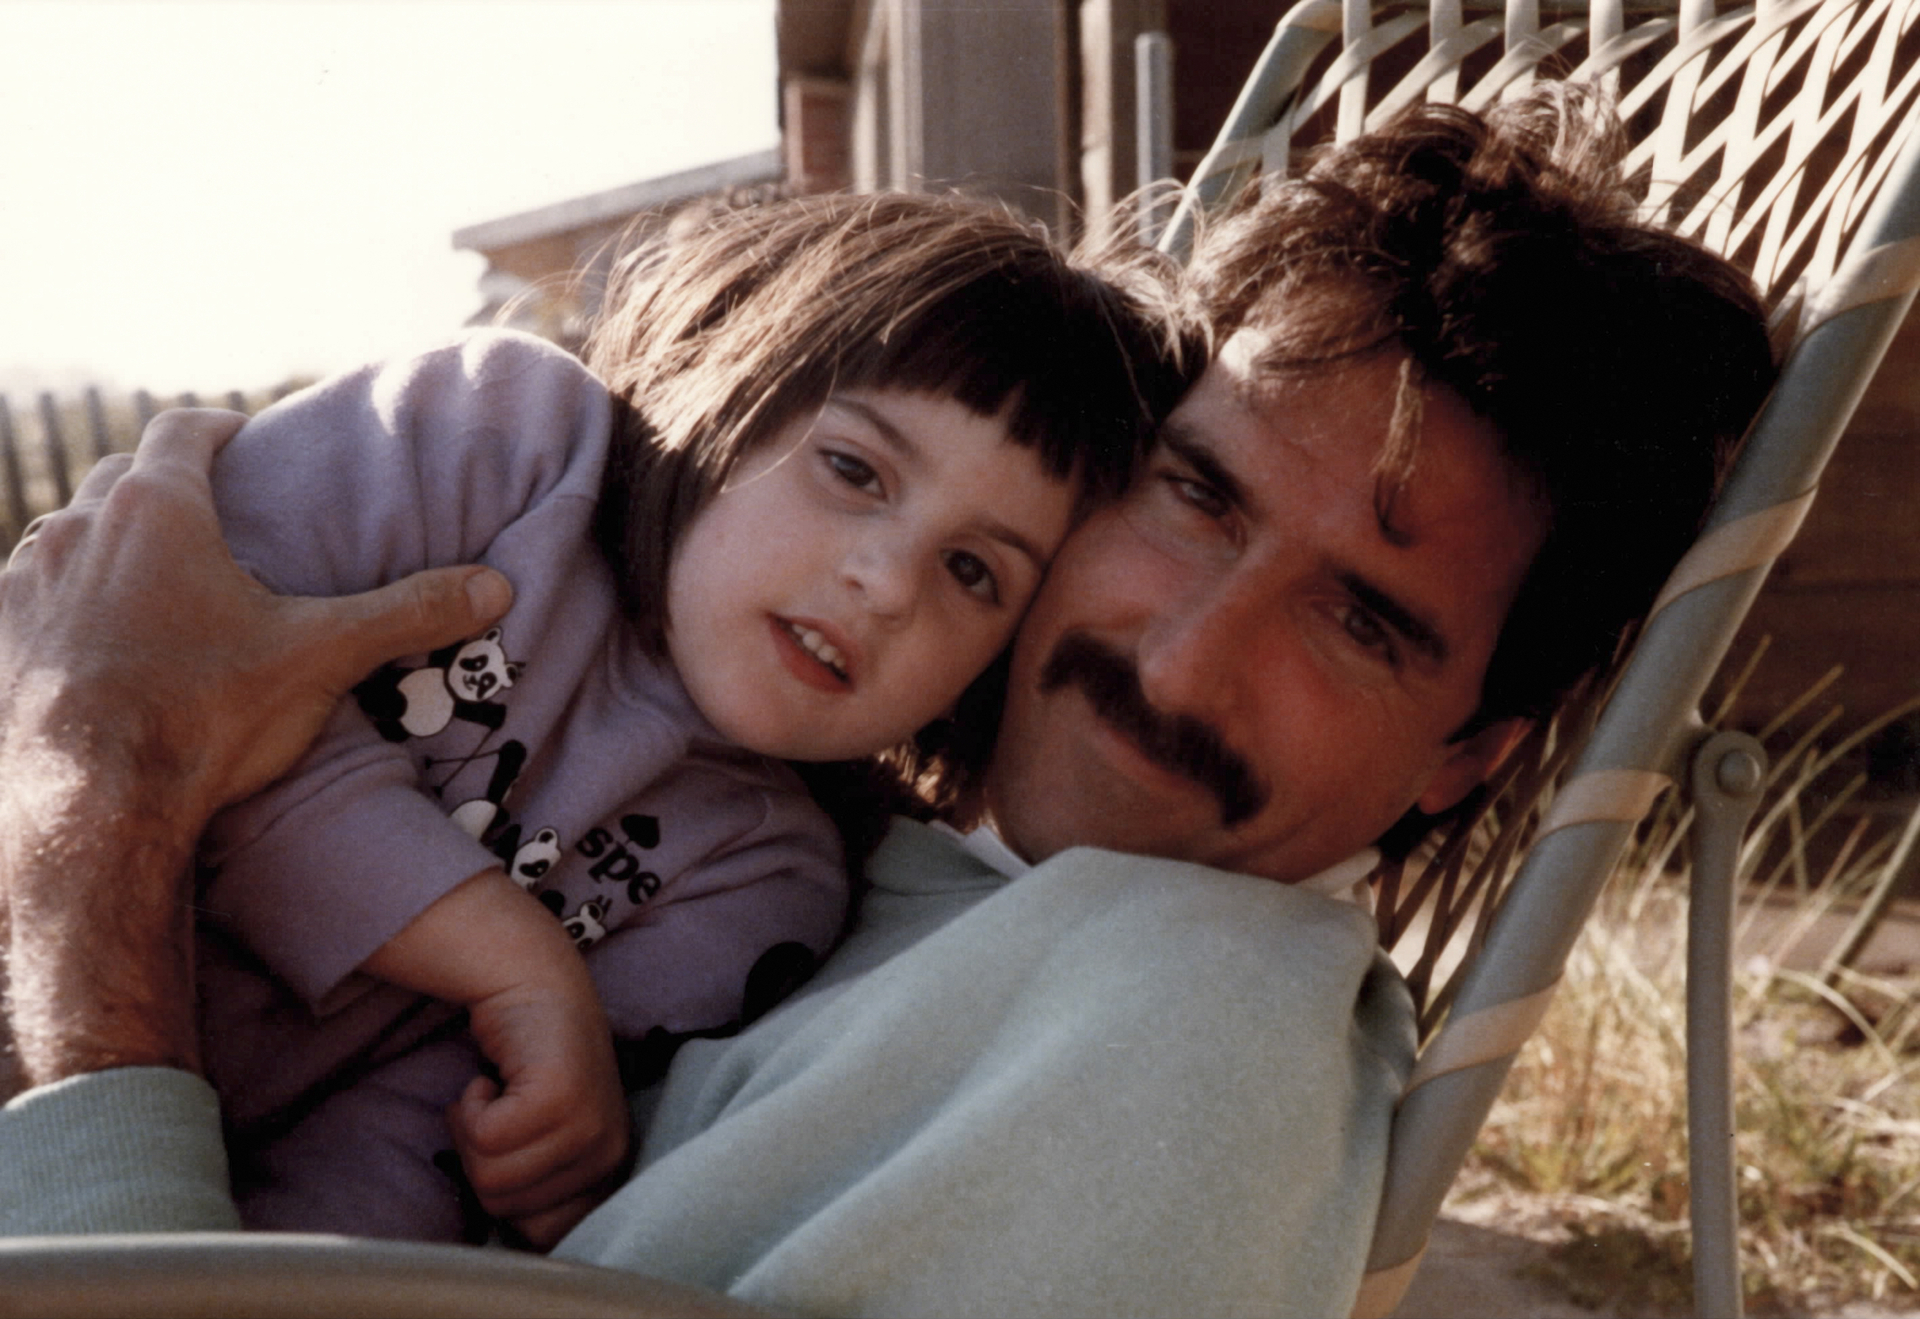 Ry Russo-Young as a child with her donor Tom Steel